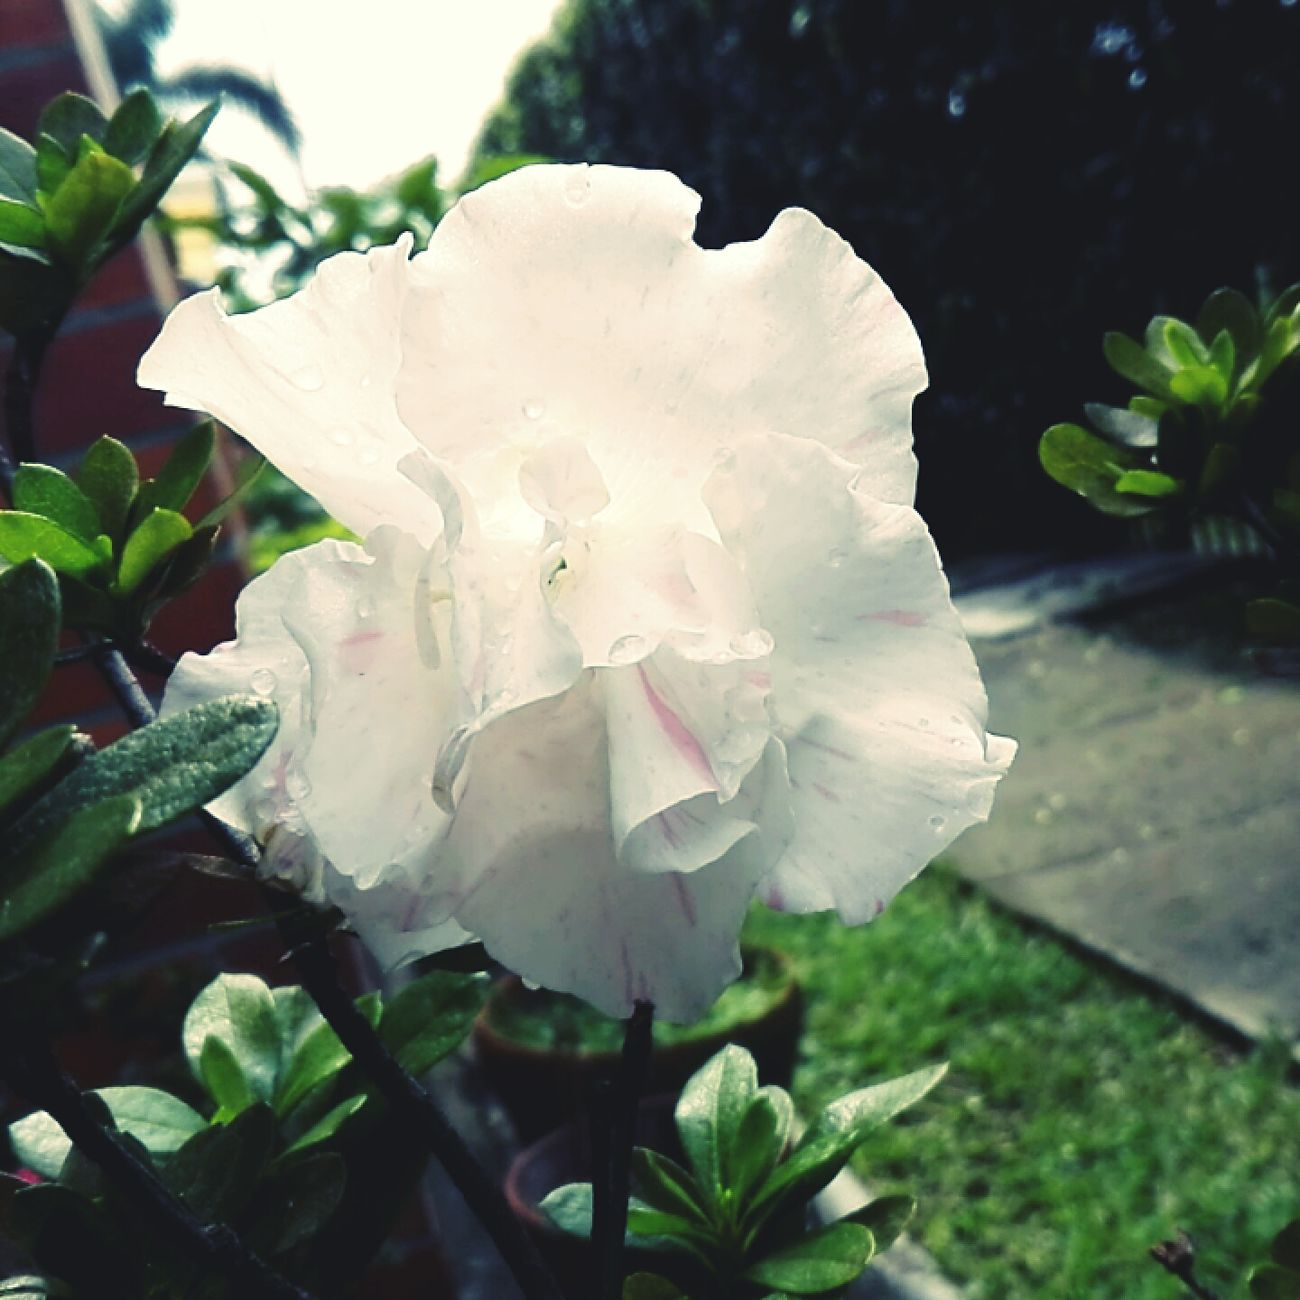 Creciendo. Flower Nature Plant Beauty In Nature Fragility Growth Close-up Outdoors Beauty First Eyeem Photo CALI COLOMBIA Green Color Love Freshness Growth Picoftheday High Angle View People Photography Transparent